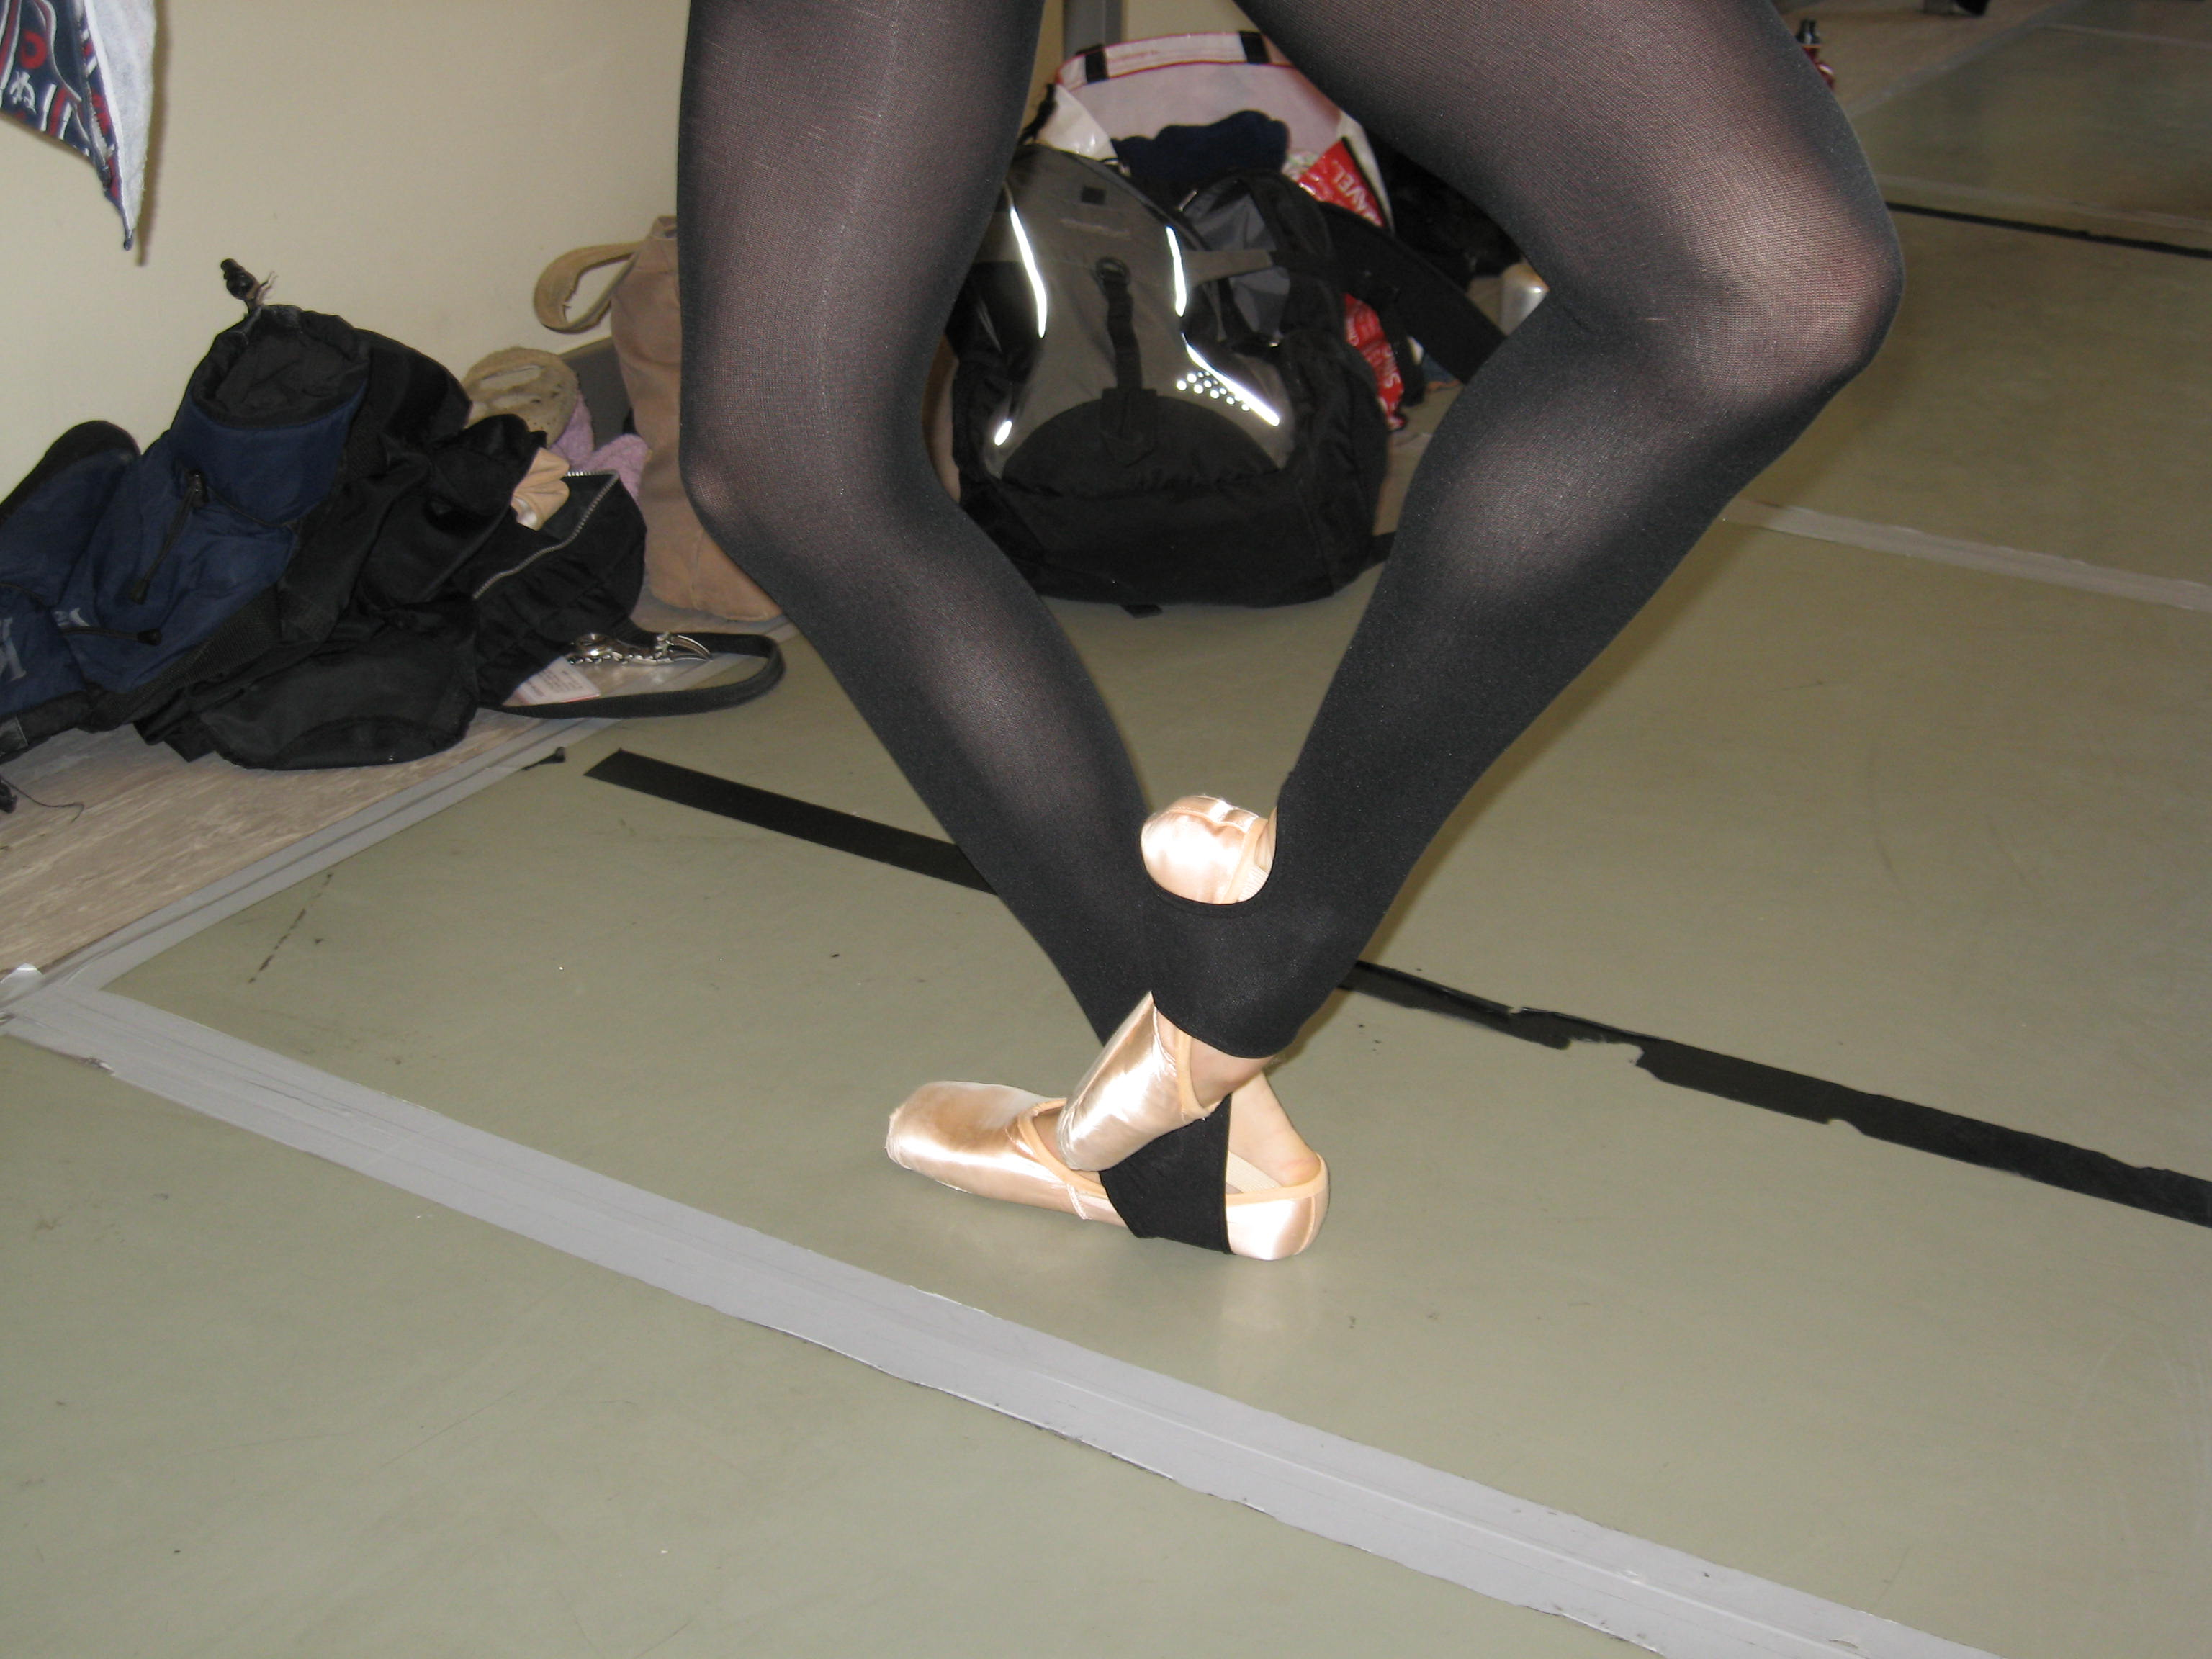 Cou-de-pied in black ballet tights